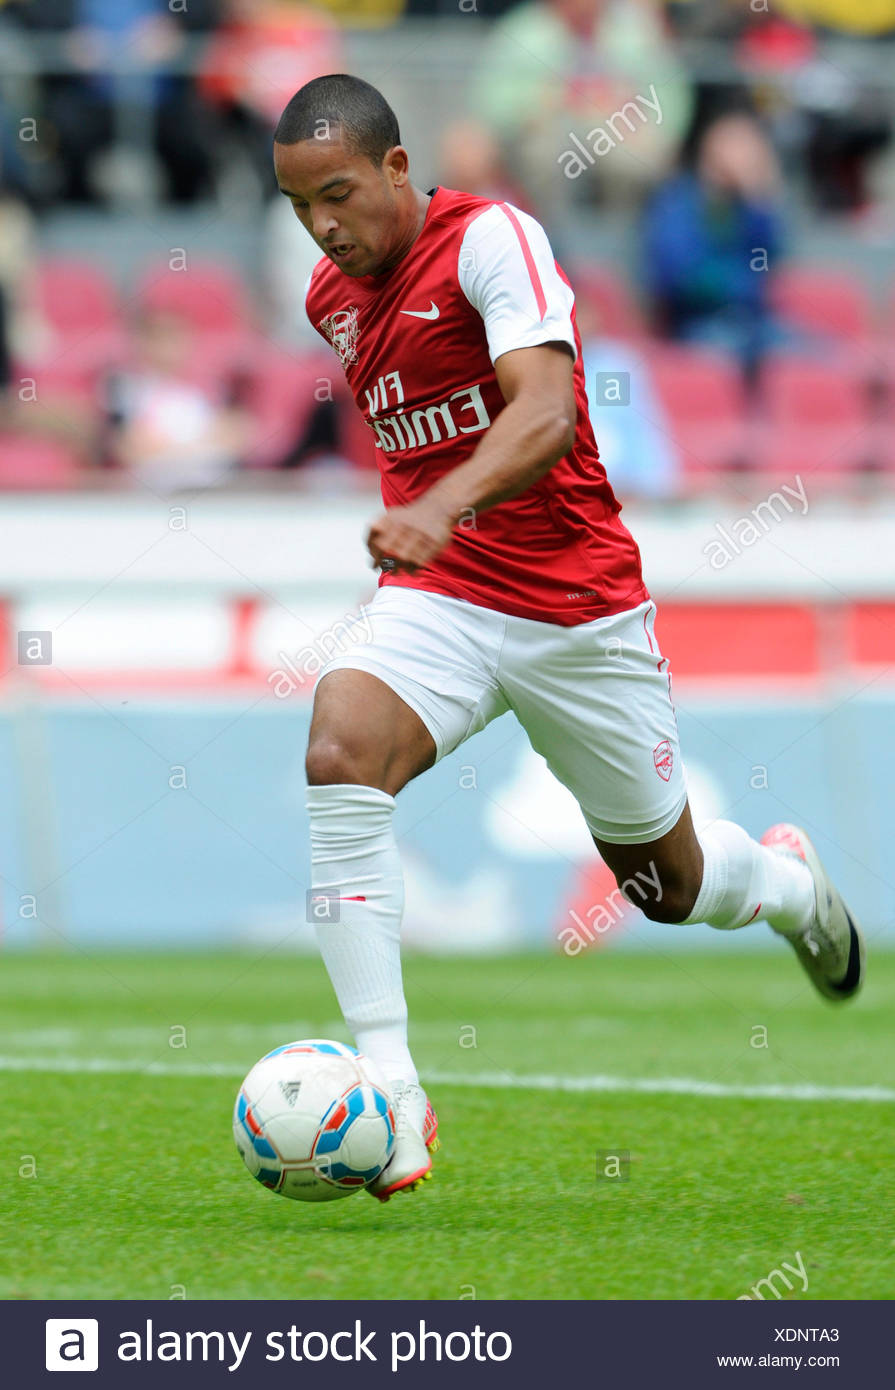 Theo Walcott of Arsenal during football test match between FC Cologne 1-2 Arsenal, Rhein-Energie-Stadion, Cologne - Stock Image